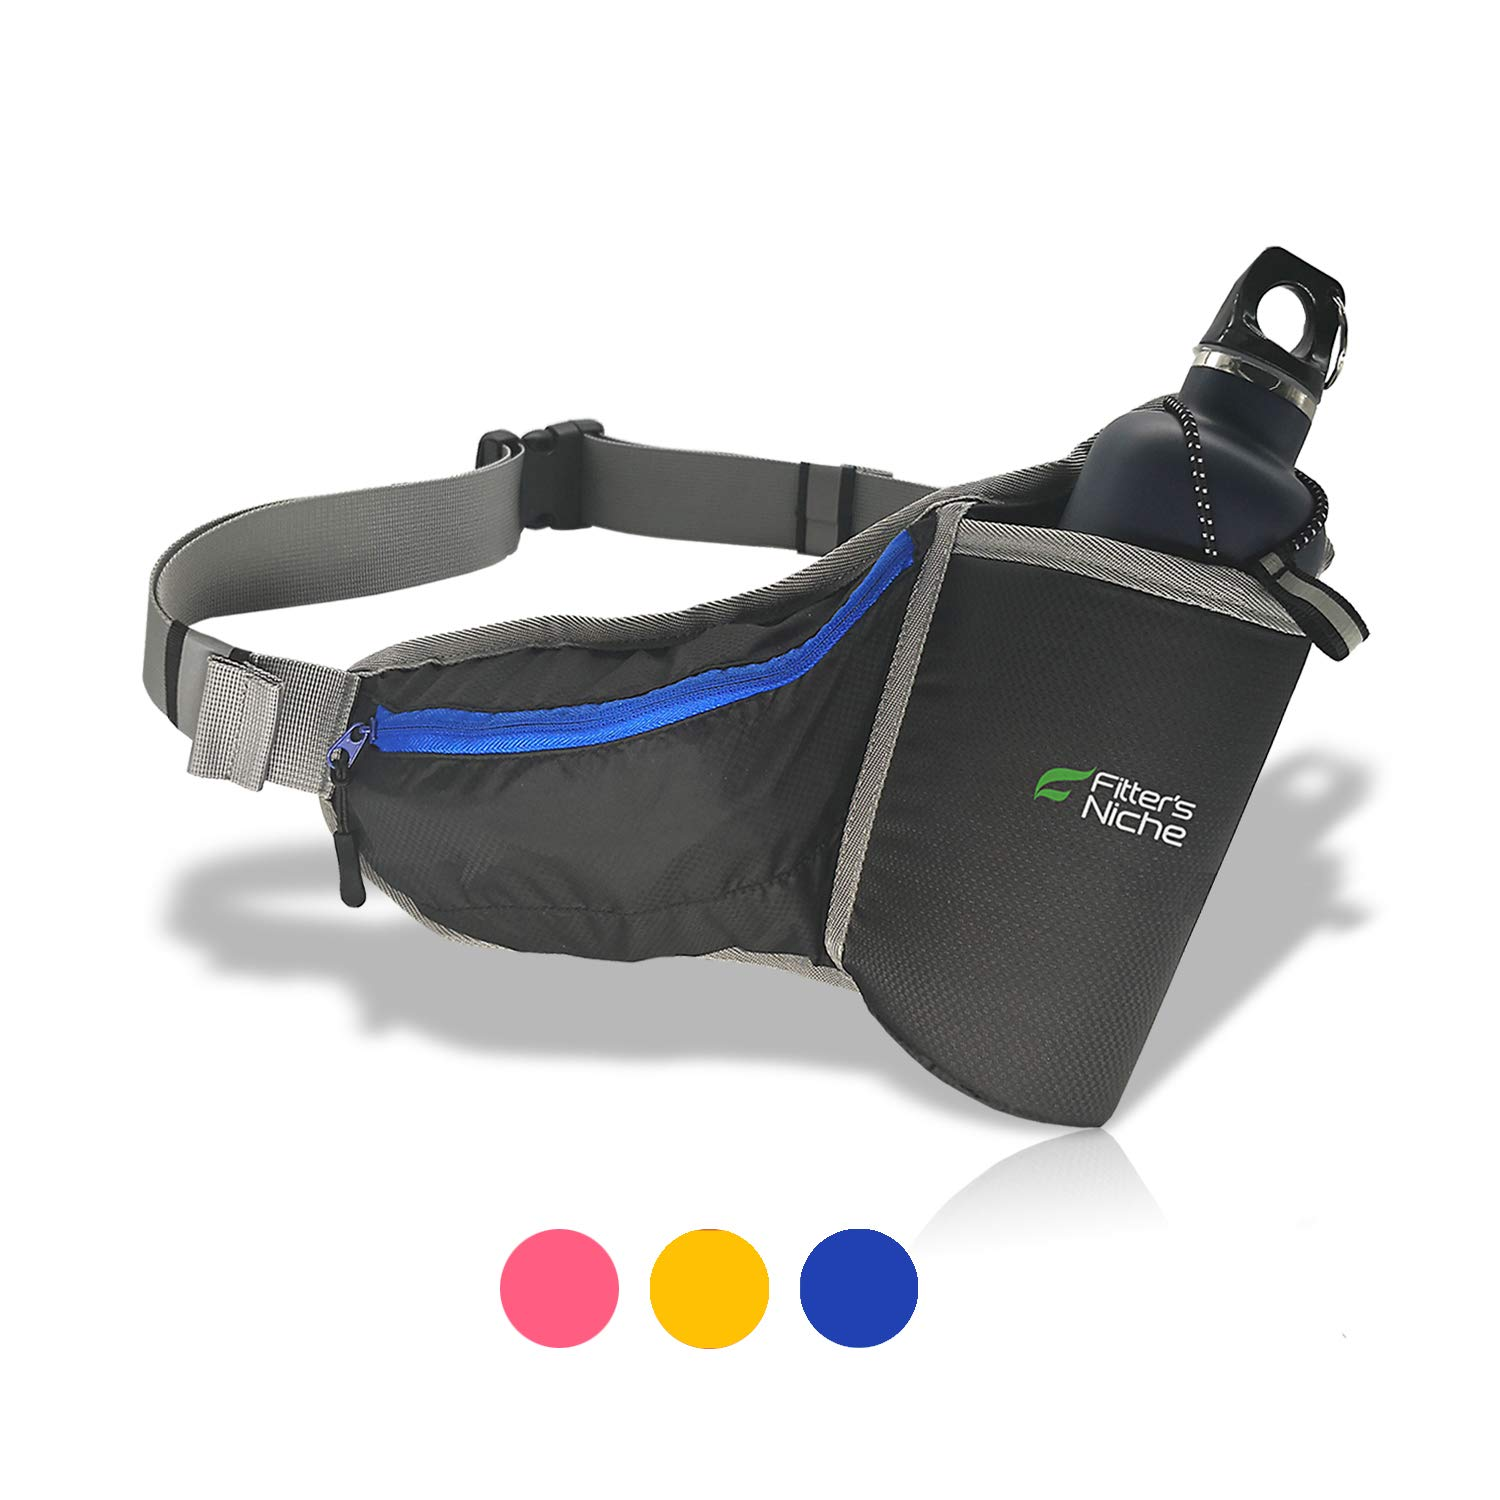 fitters niche Hydration Fanny Pack, Water Bottle Holster Holder Running Belt for Men Women,